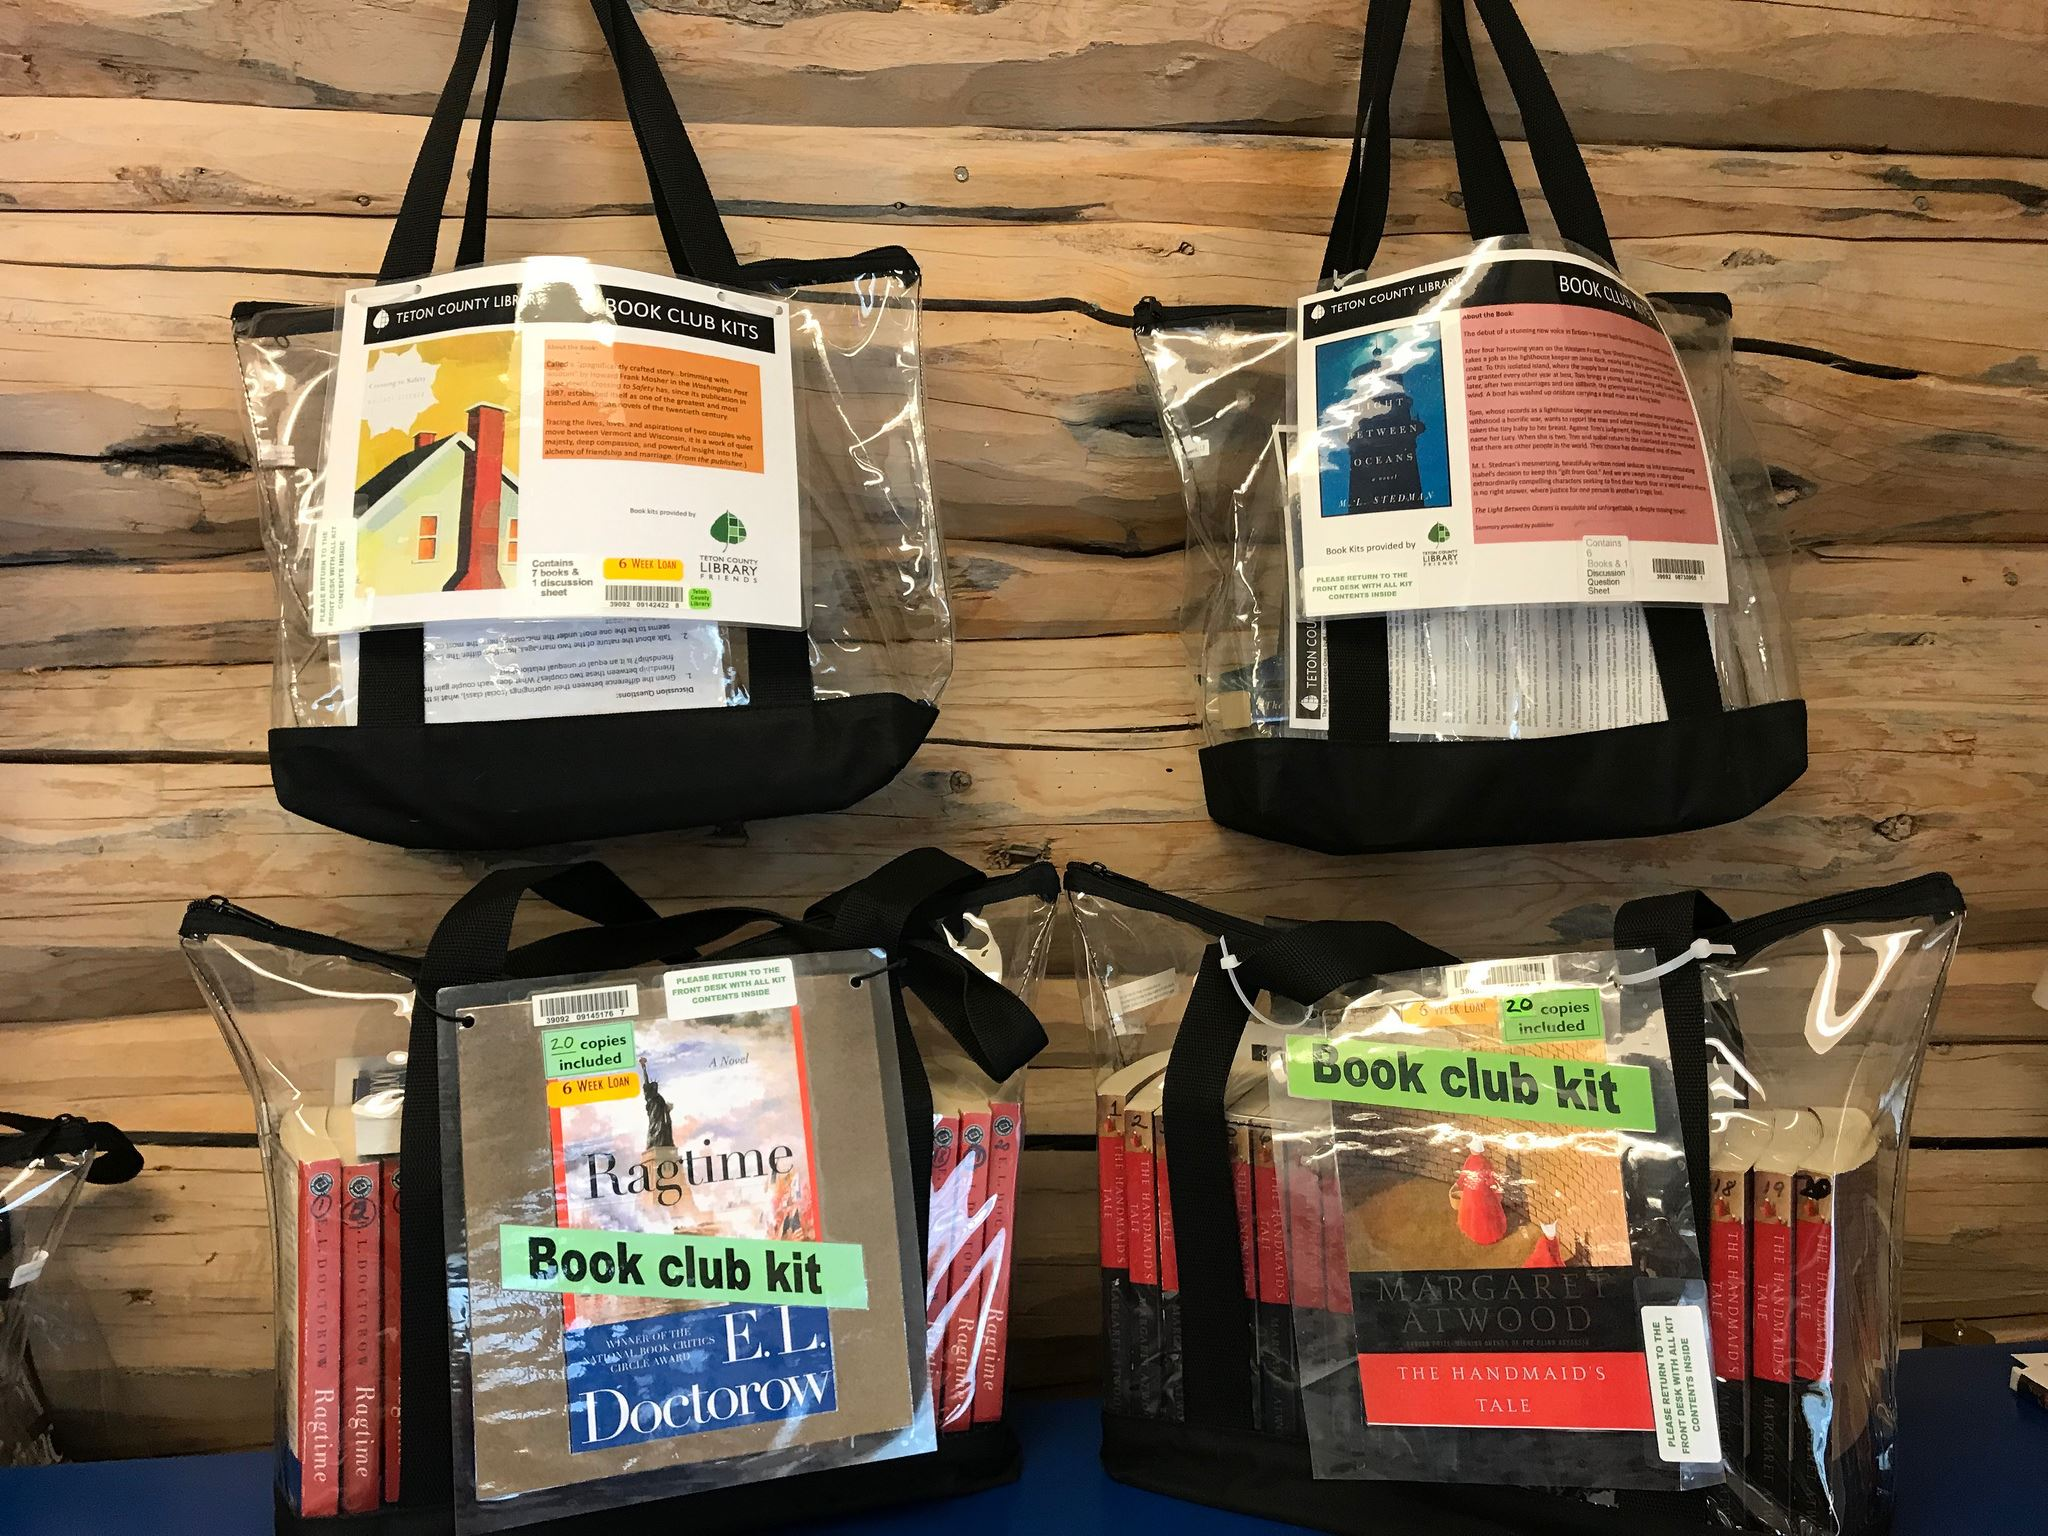 image of book club kit, bags filled with books